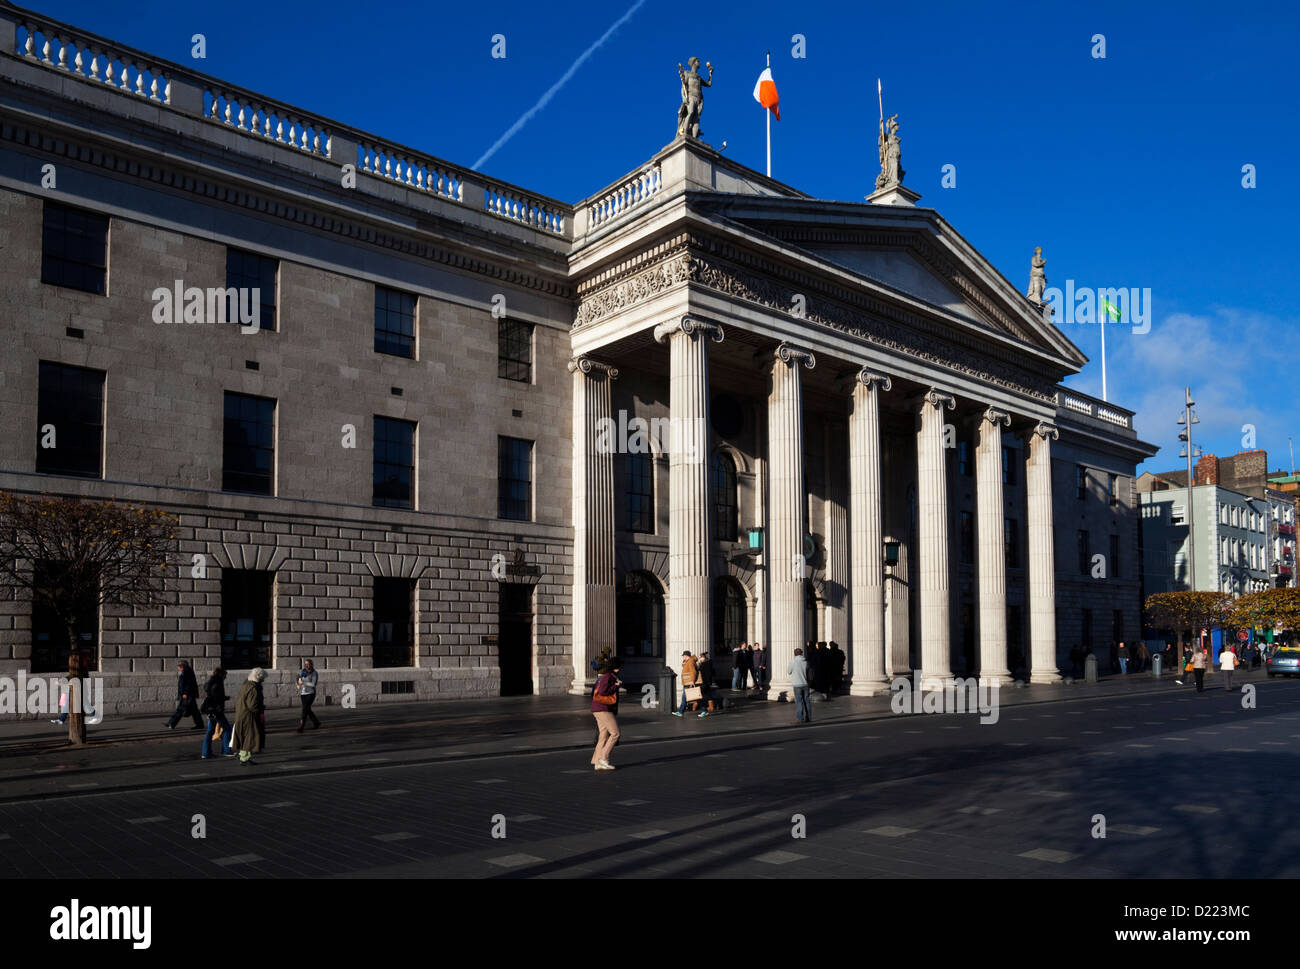 The General Post Office (GPO) in O'Connell Street in Dublin, Ireland. - Stock Image